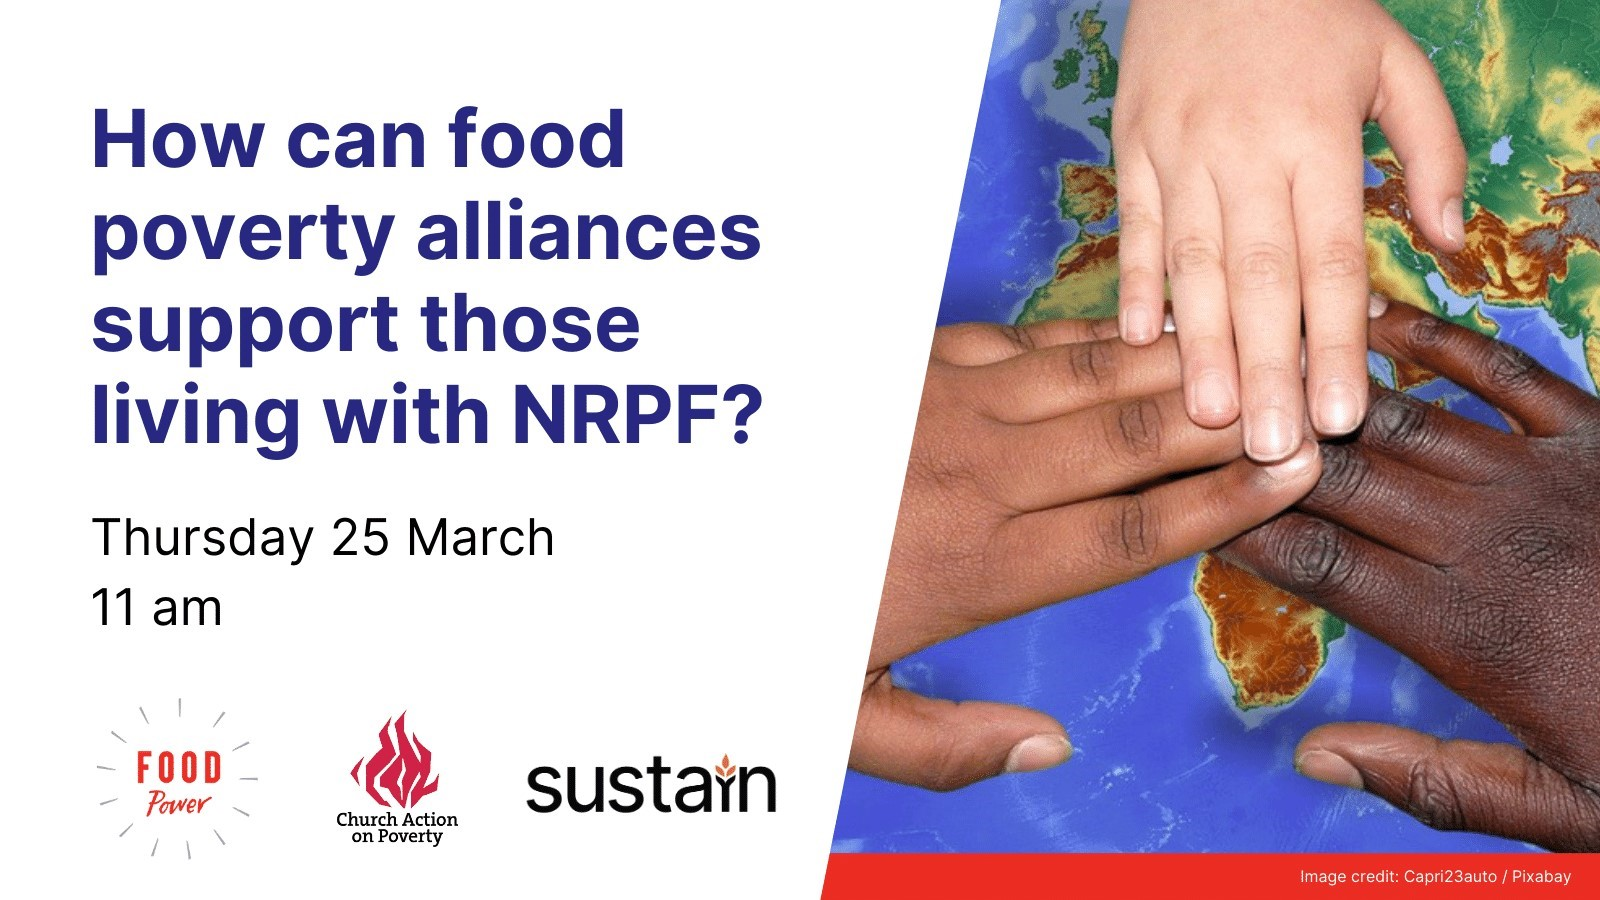 How can food poverty alliances support those living with NRPF? Thursday 25 March, 11am